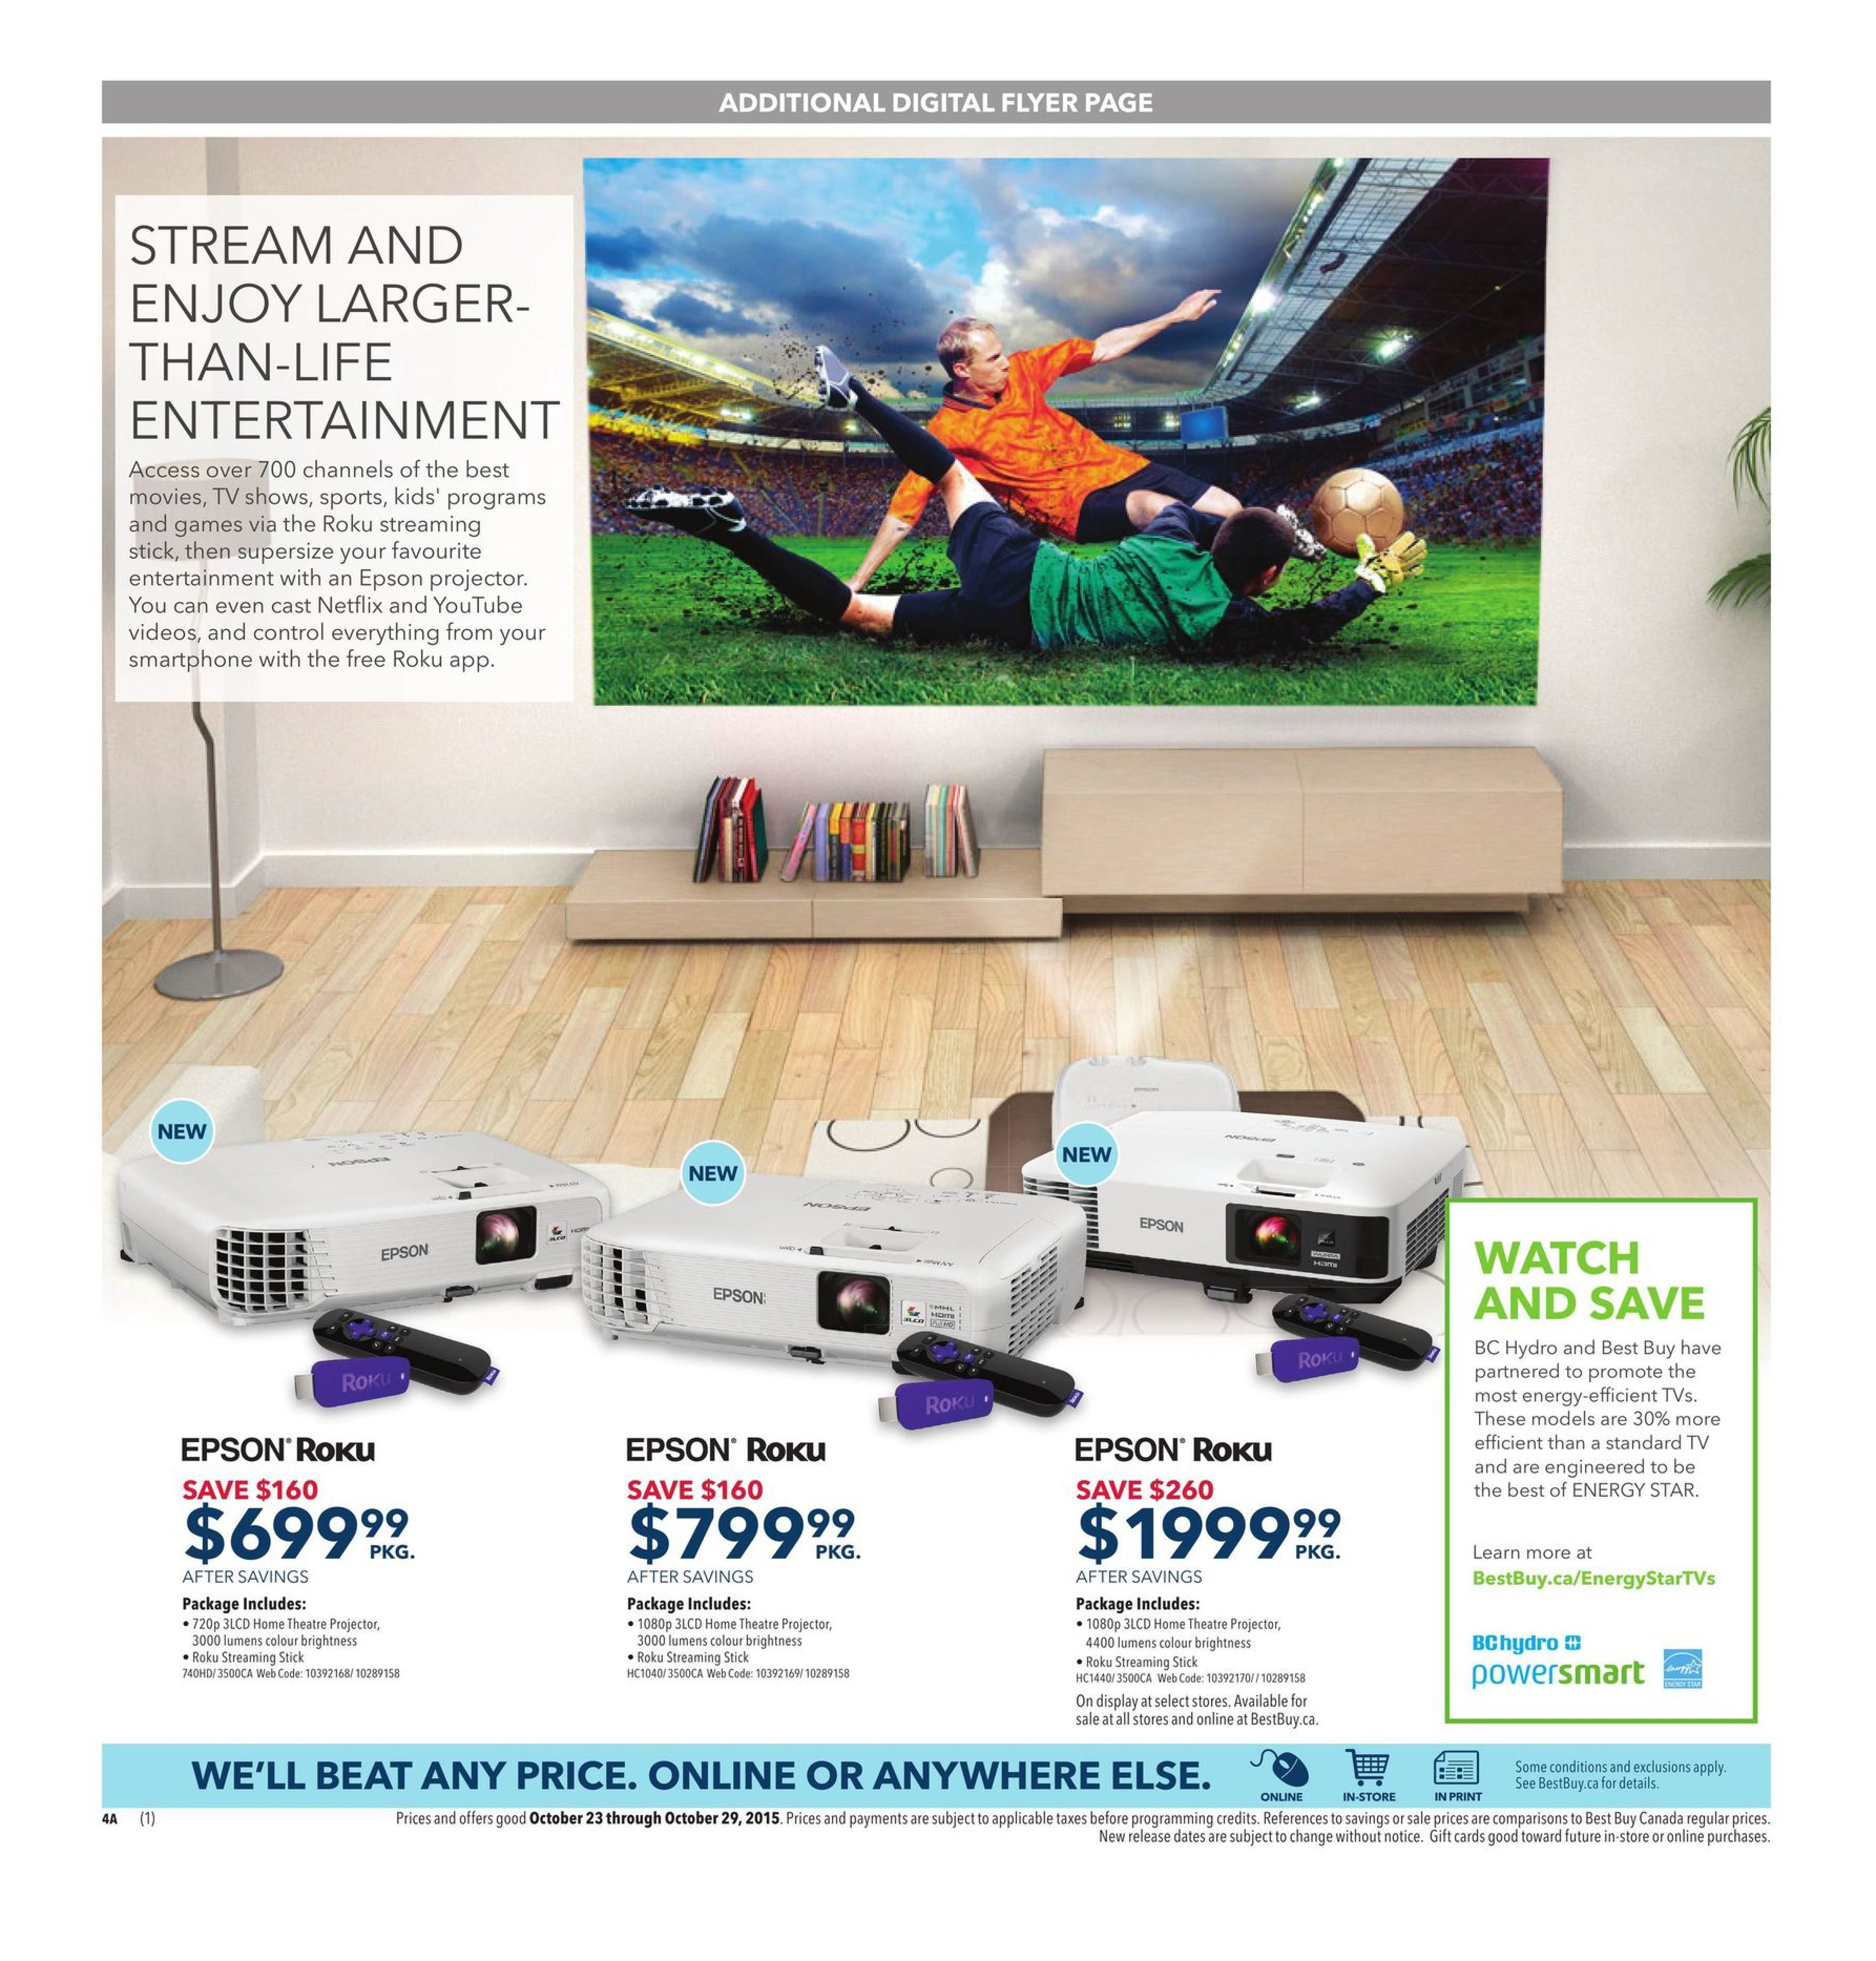 Best Buy Weekly Flyer Prepare To Hunt Master Chief Oct 3wrgb Led Driver Ver11 With Cmos Youtube 23 29